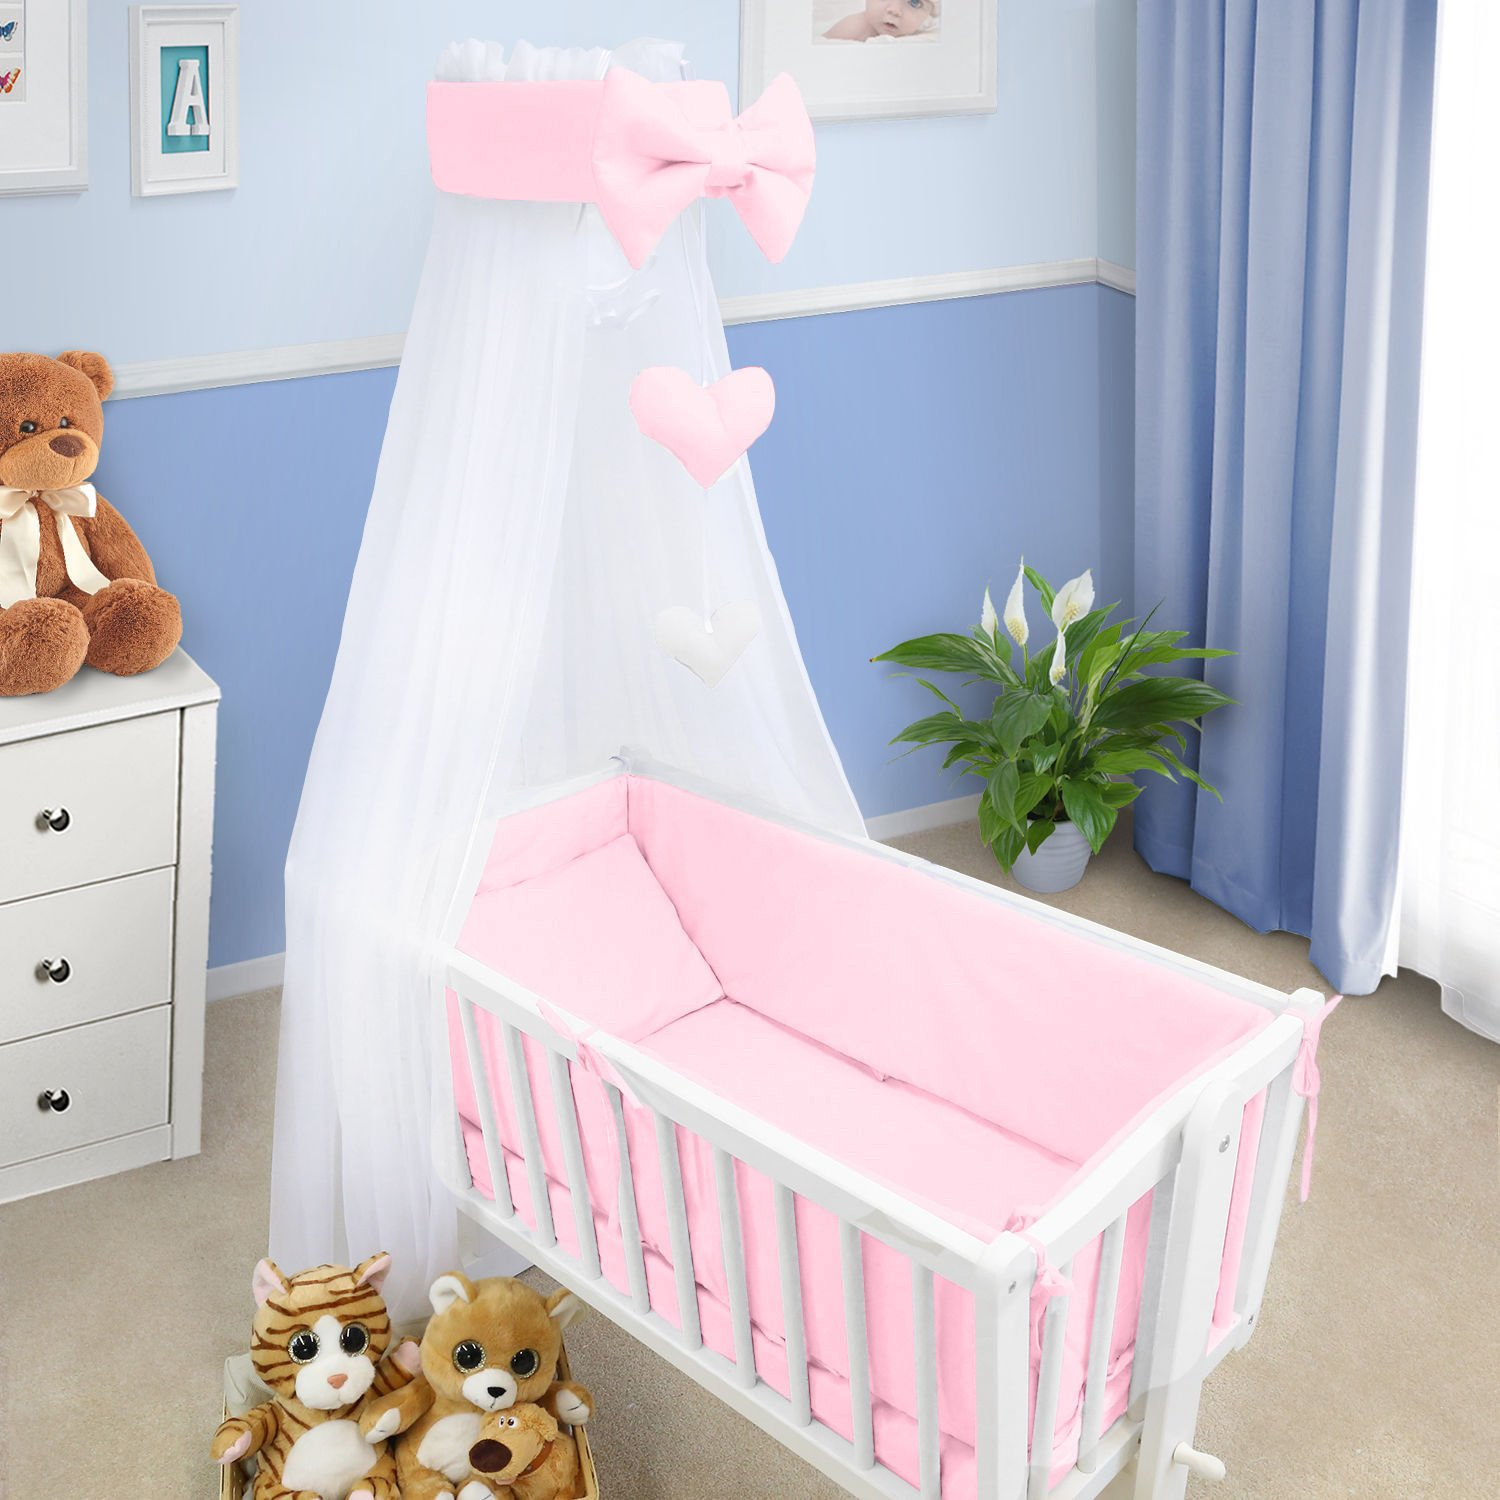 Baby Canopy Crib Drape Mosquito Net With Holder To Fit Crib Pink